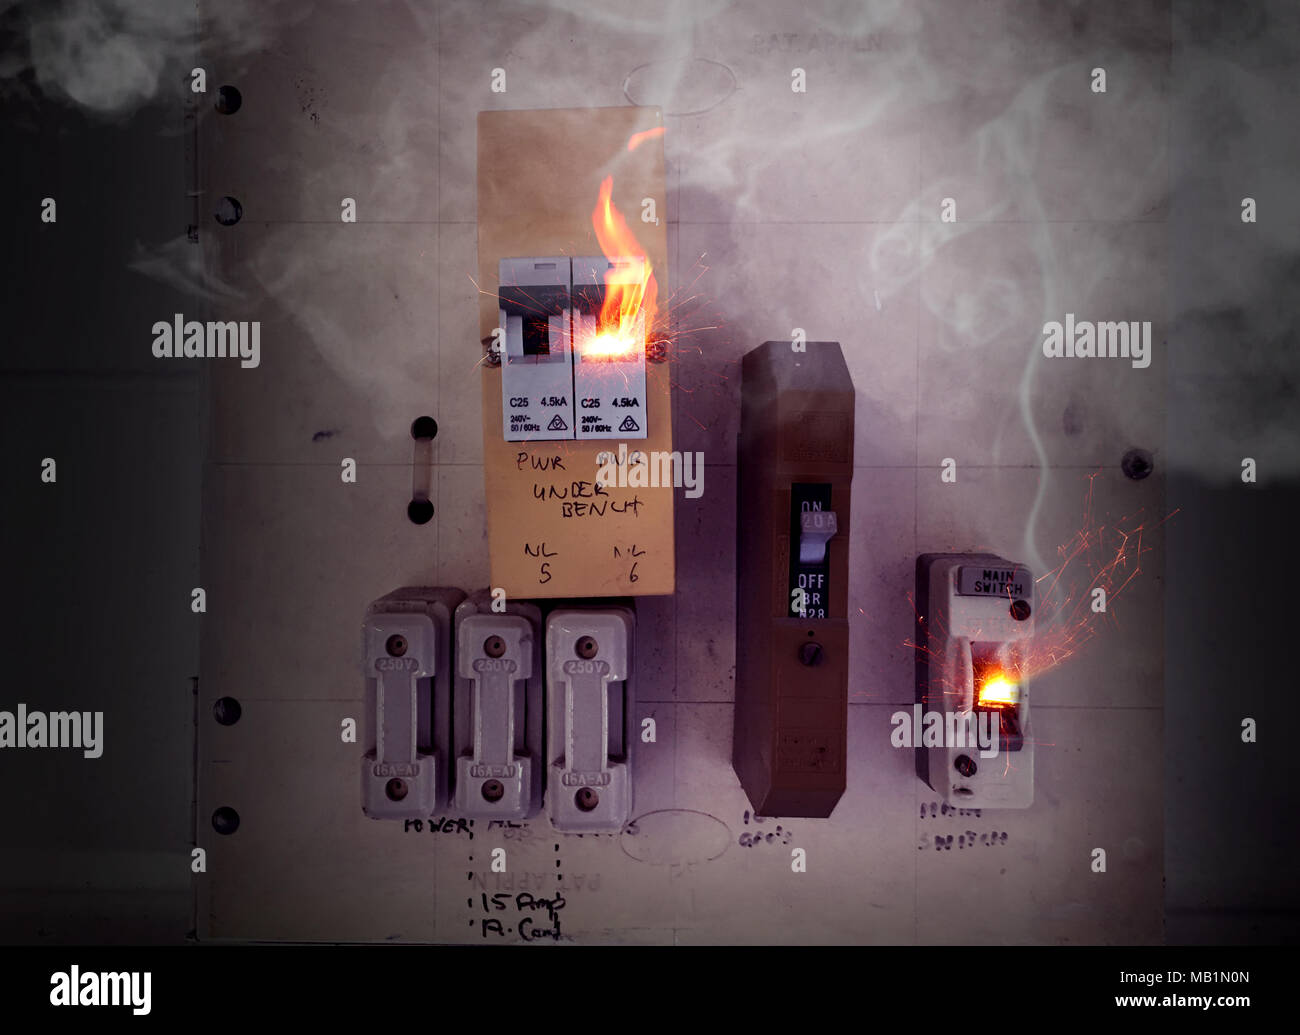 Electrical Fire Stock Photos Images Alamy 07 Jk Fuse Box Sparks And Flames Coming From An Old Switch Causing A Image